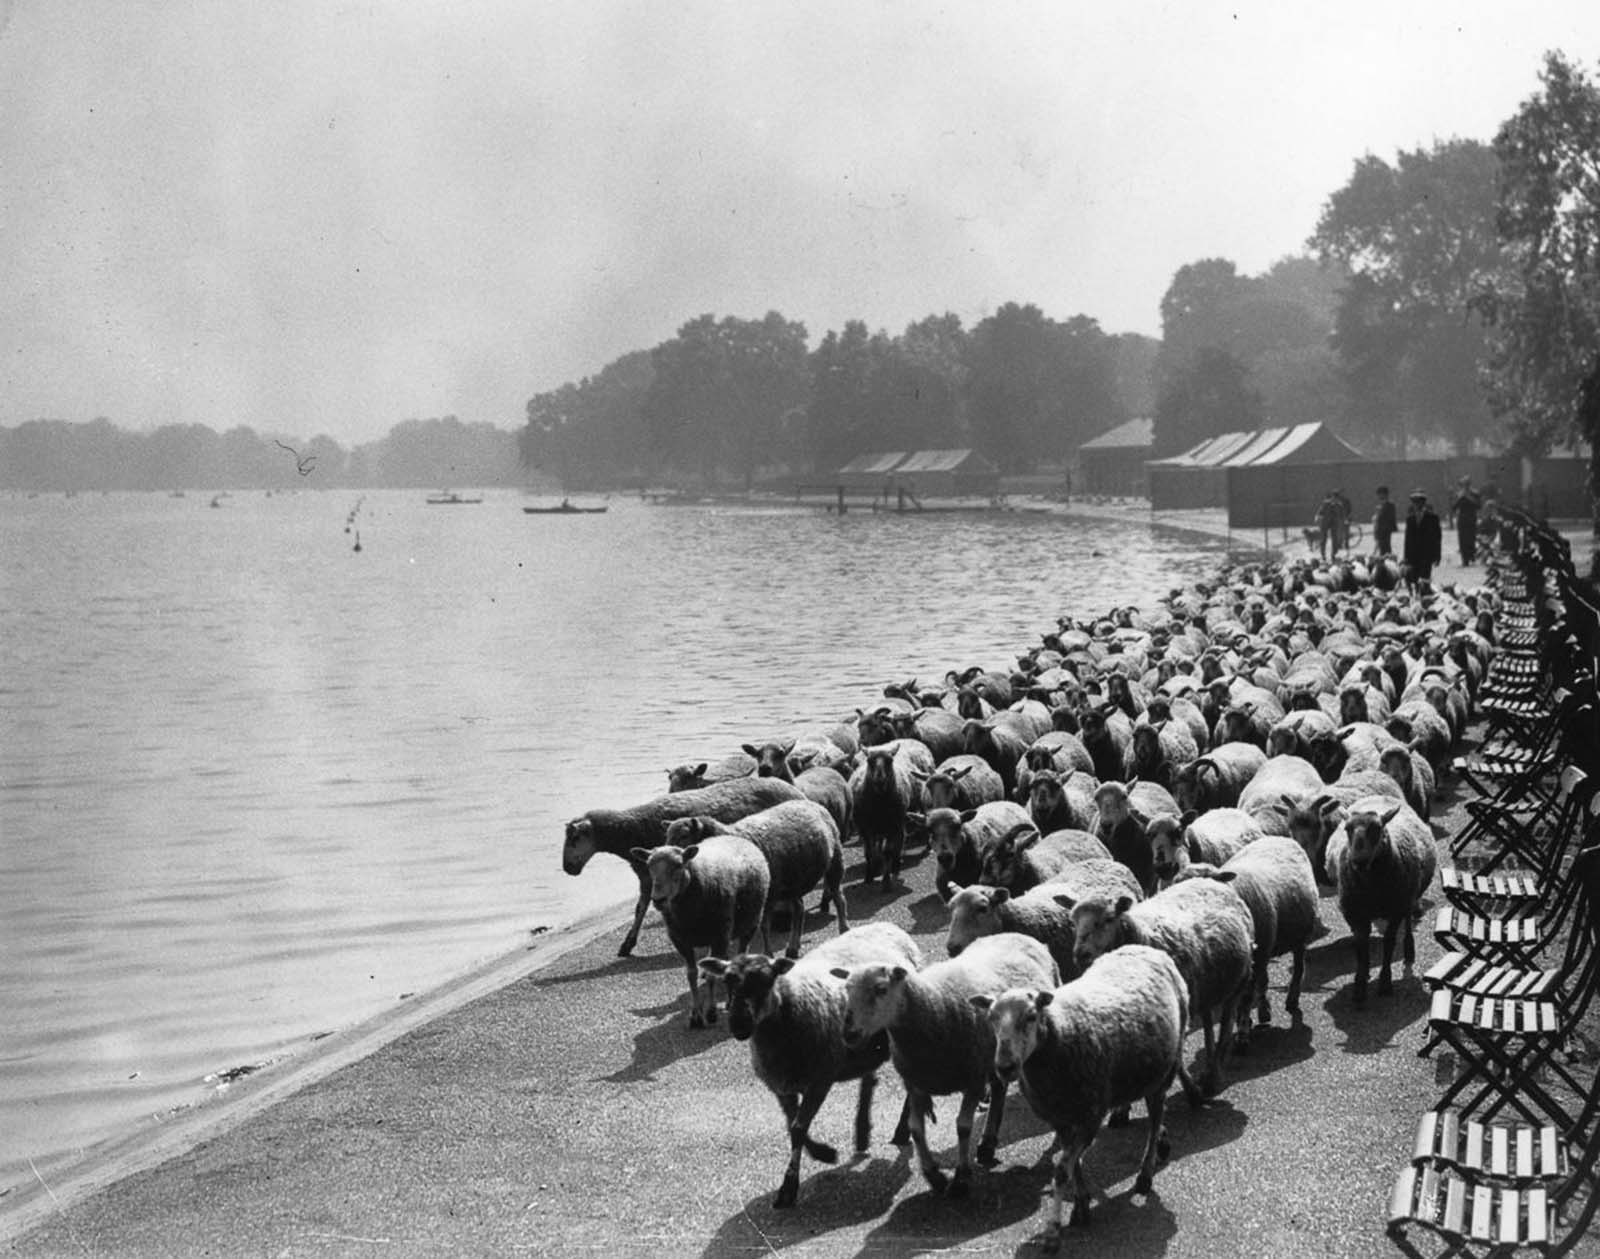 By the Serpentine in Hyde Park. 1936.